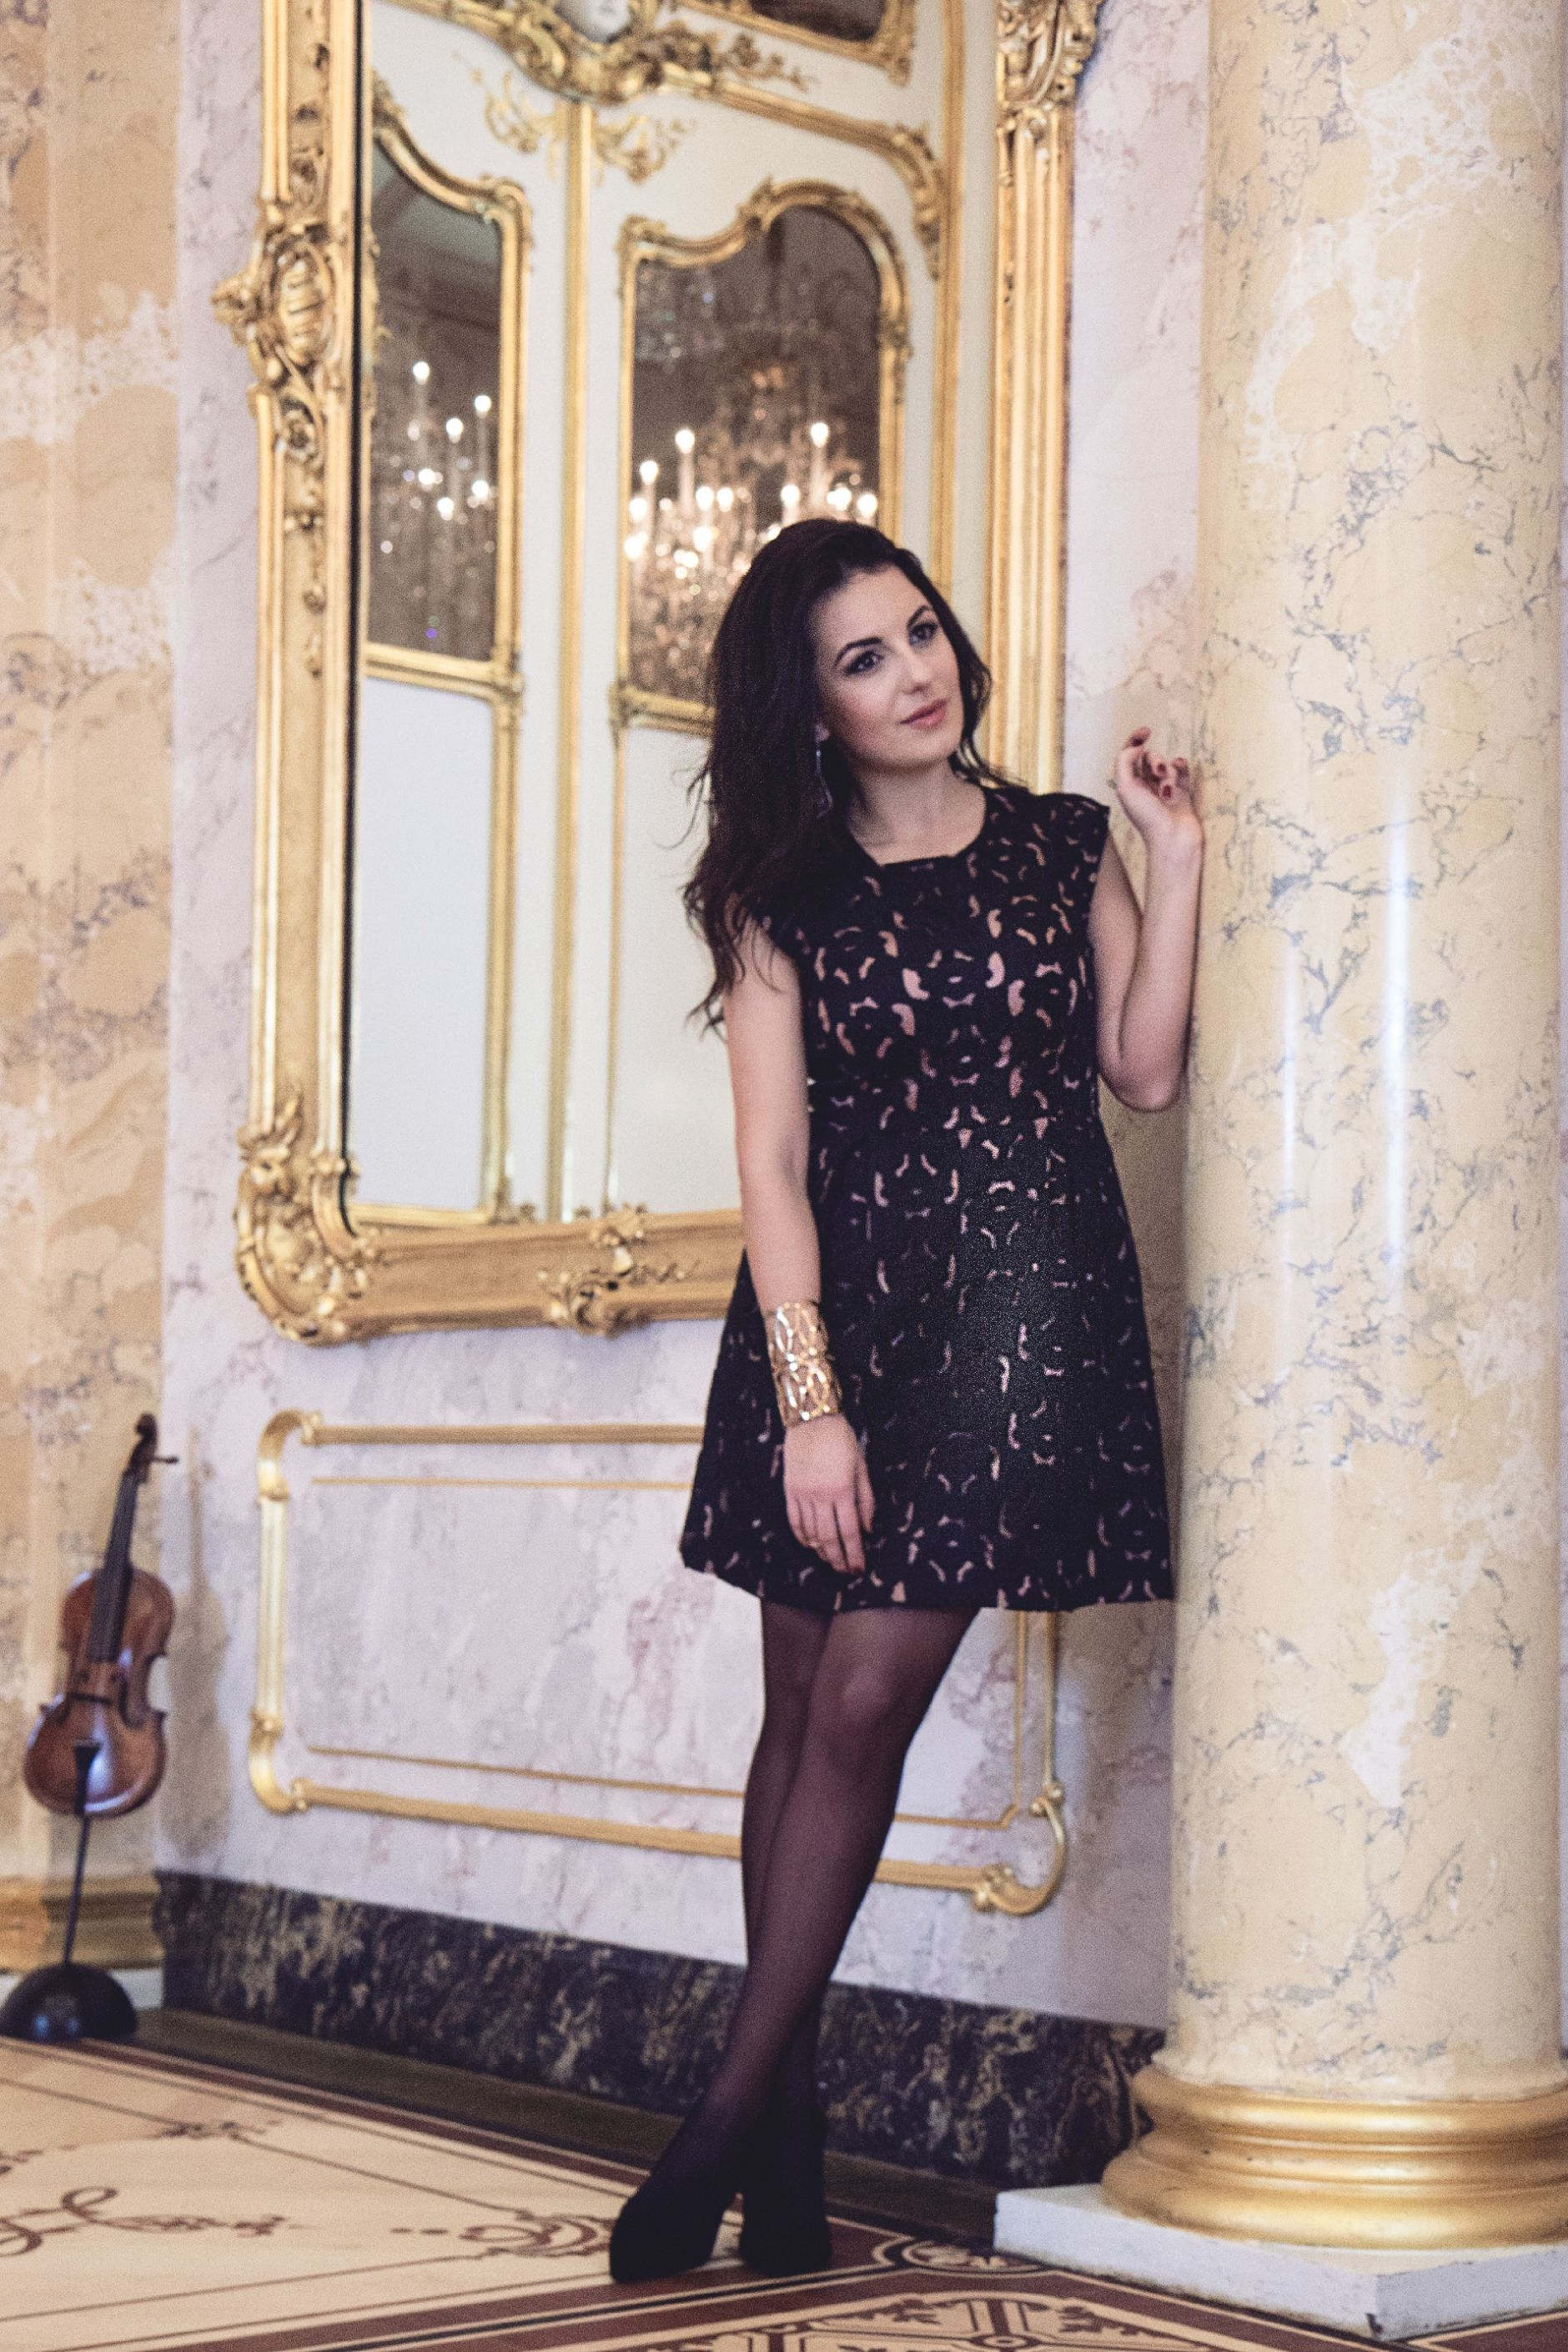 TAKE ME TO THE DANCE - DISI COUTUREDISI COUTURE